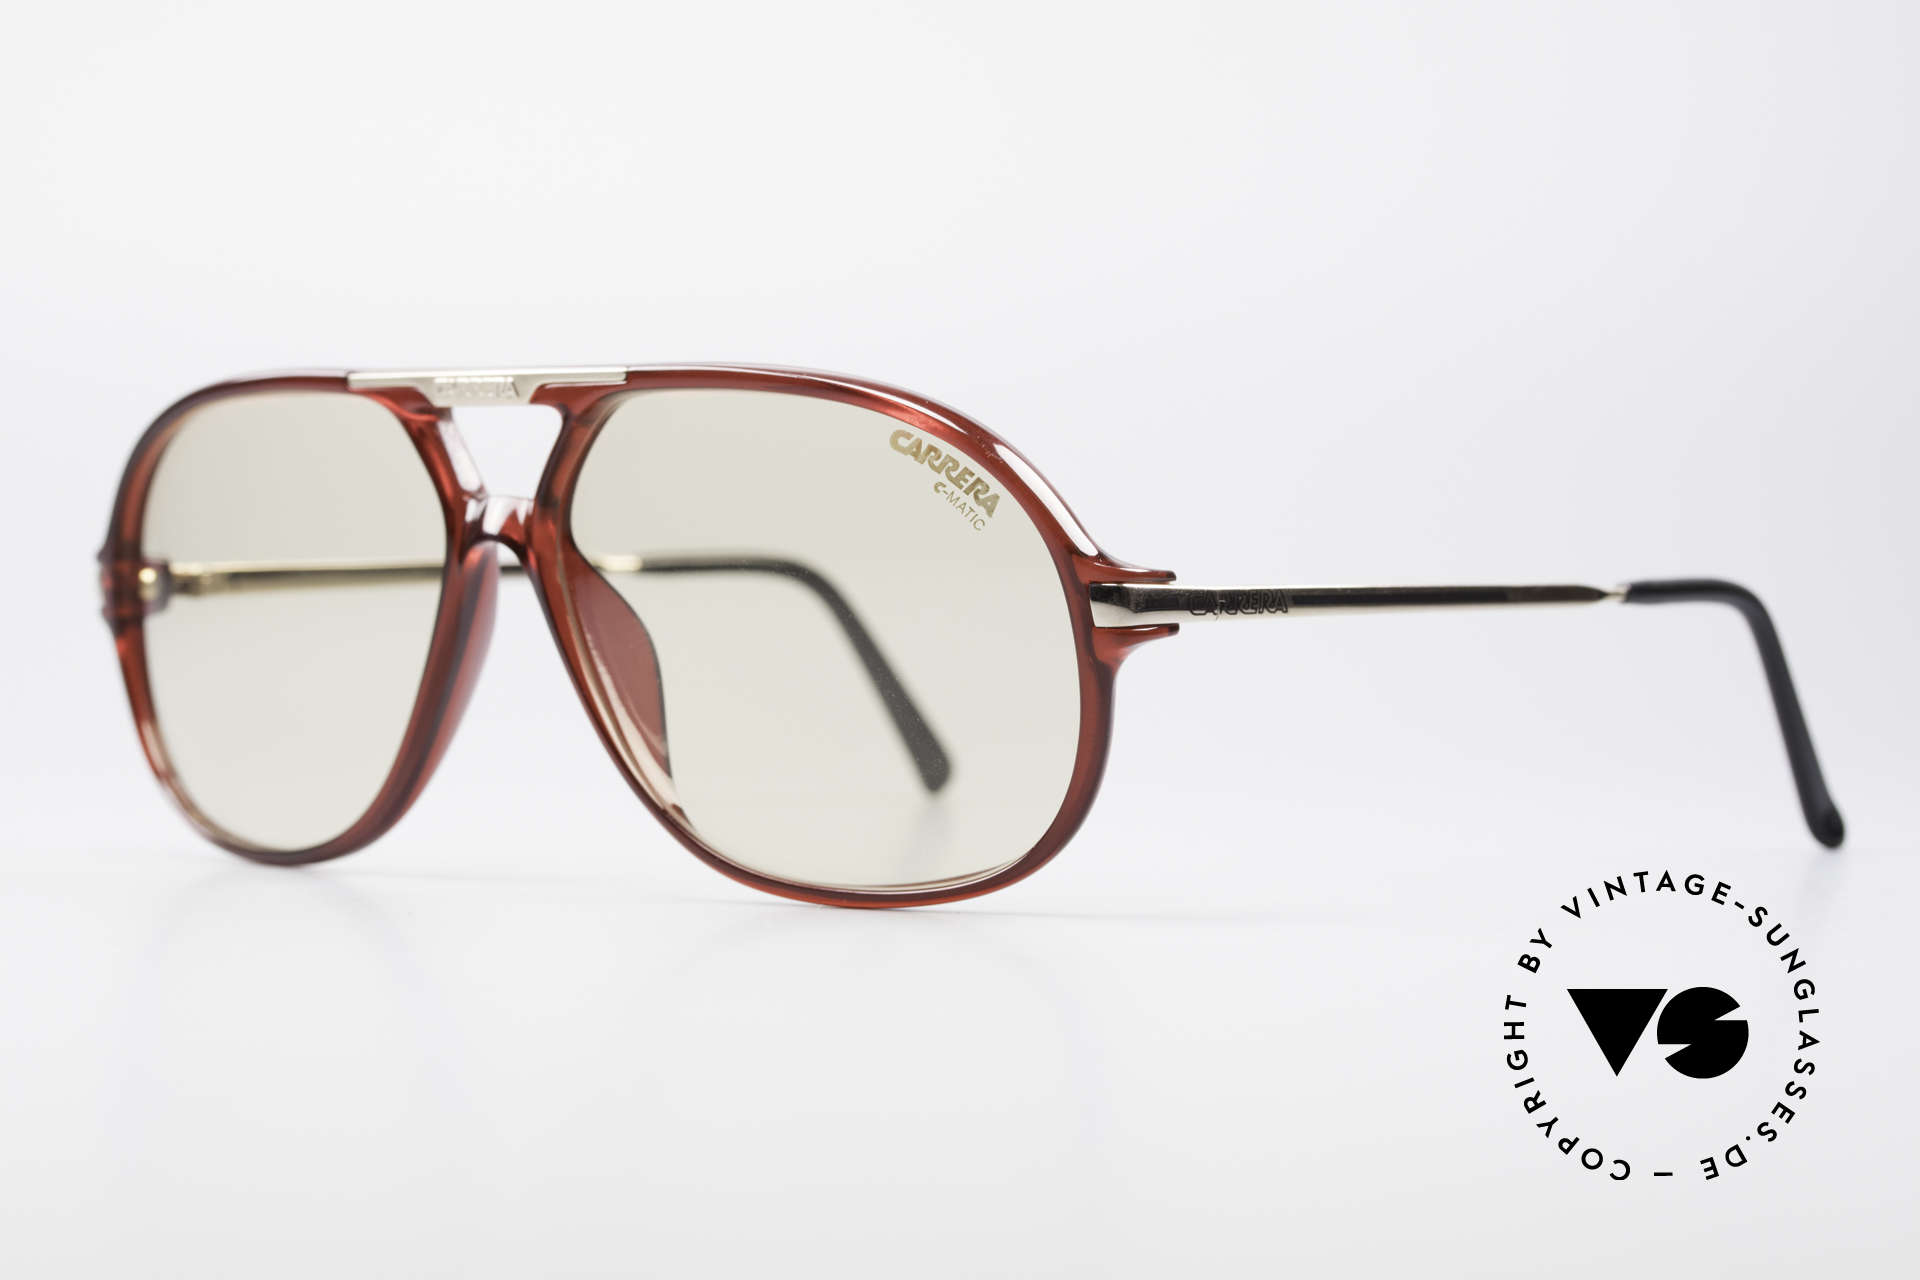 Carrera 5411 C-Matic Extra Changeable Sun Lenses, lenses are darker in the sun and lighter in the shade, Made for Men